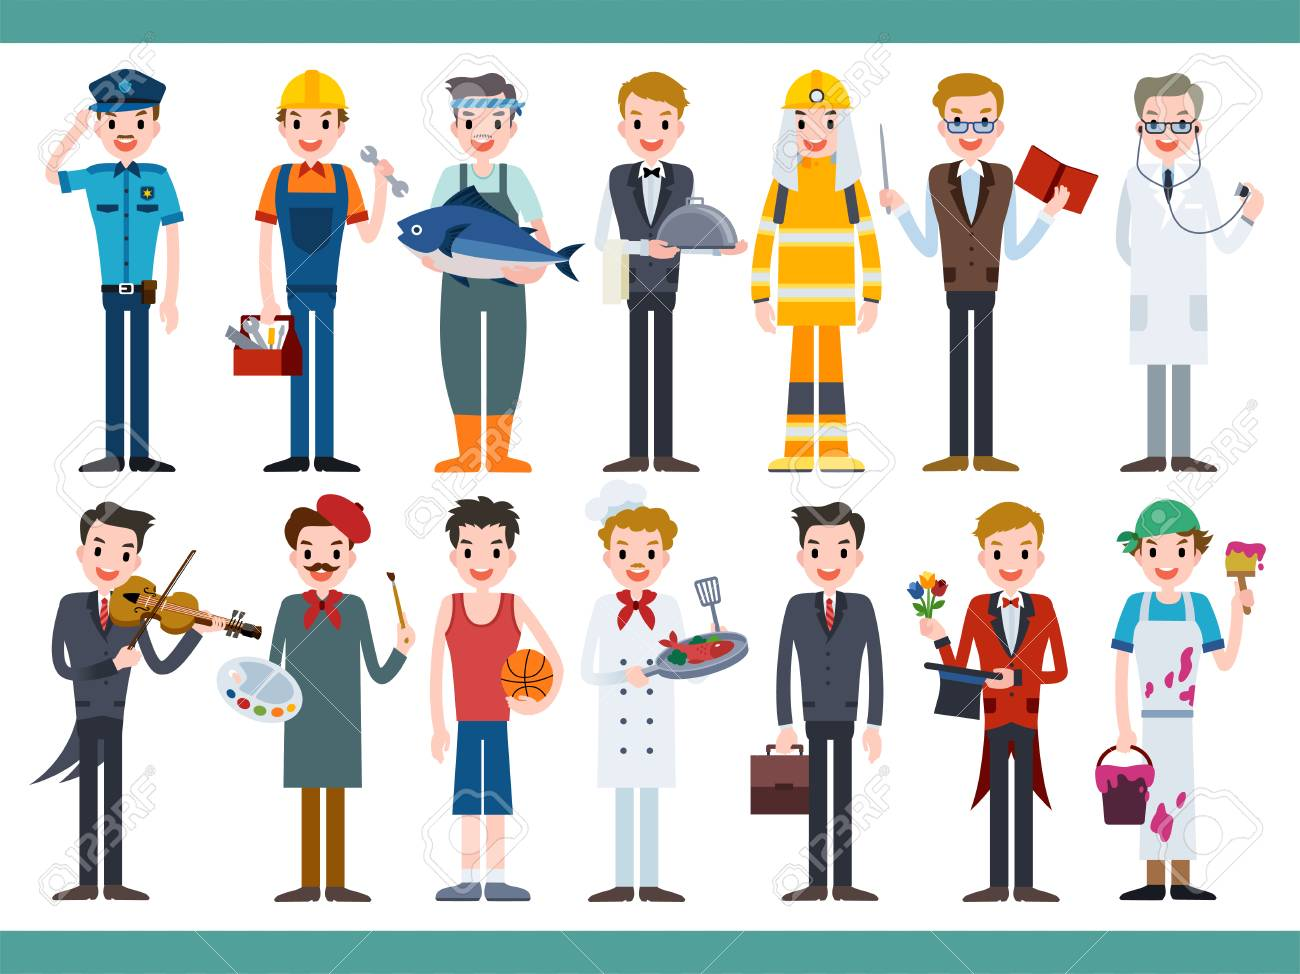 Different Career Set Lovely Characters In All Kinds Of Job Royalty Free Cliparts Vectors And Stock Illustration Image 94208991